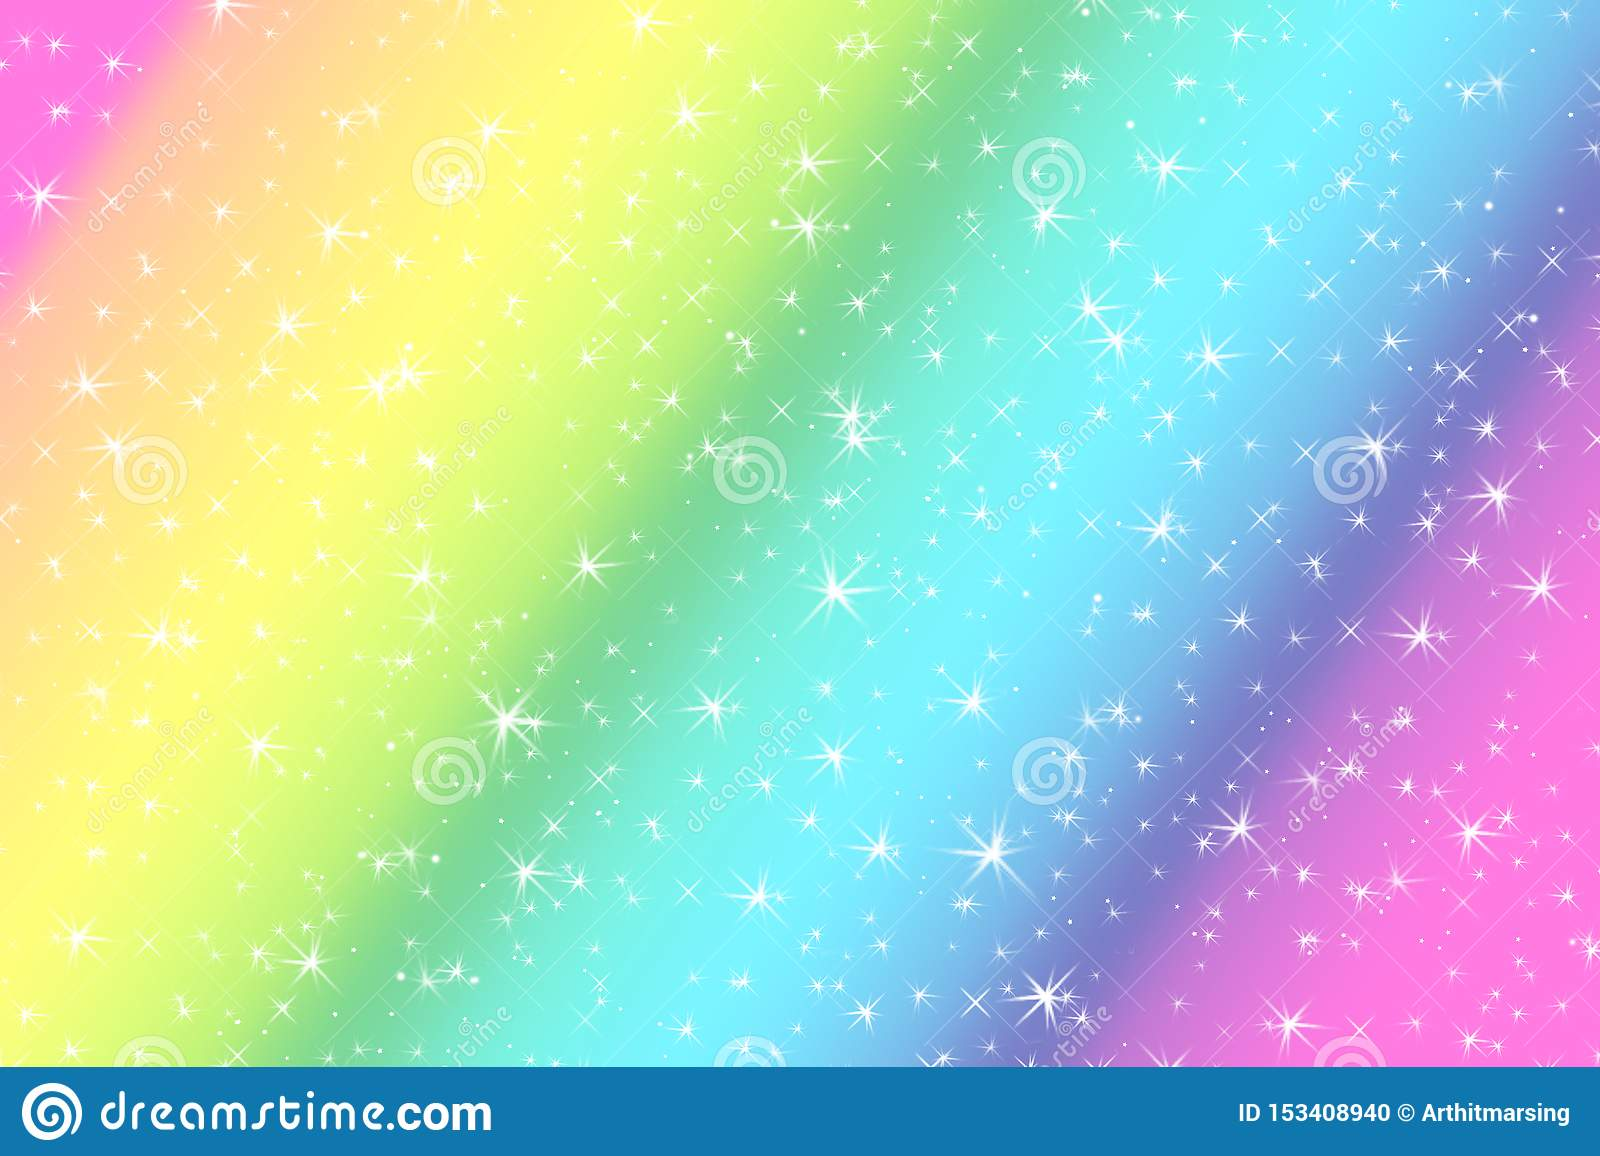 Rainbow color abstract background with soft light stars presented background of dream concept on sweet content. The rainbow color